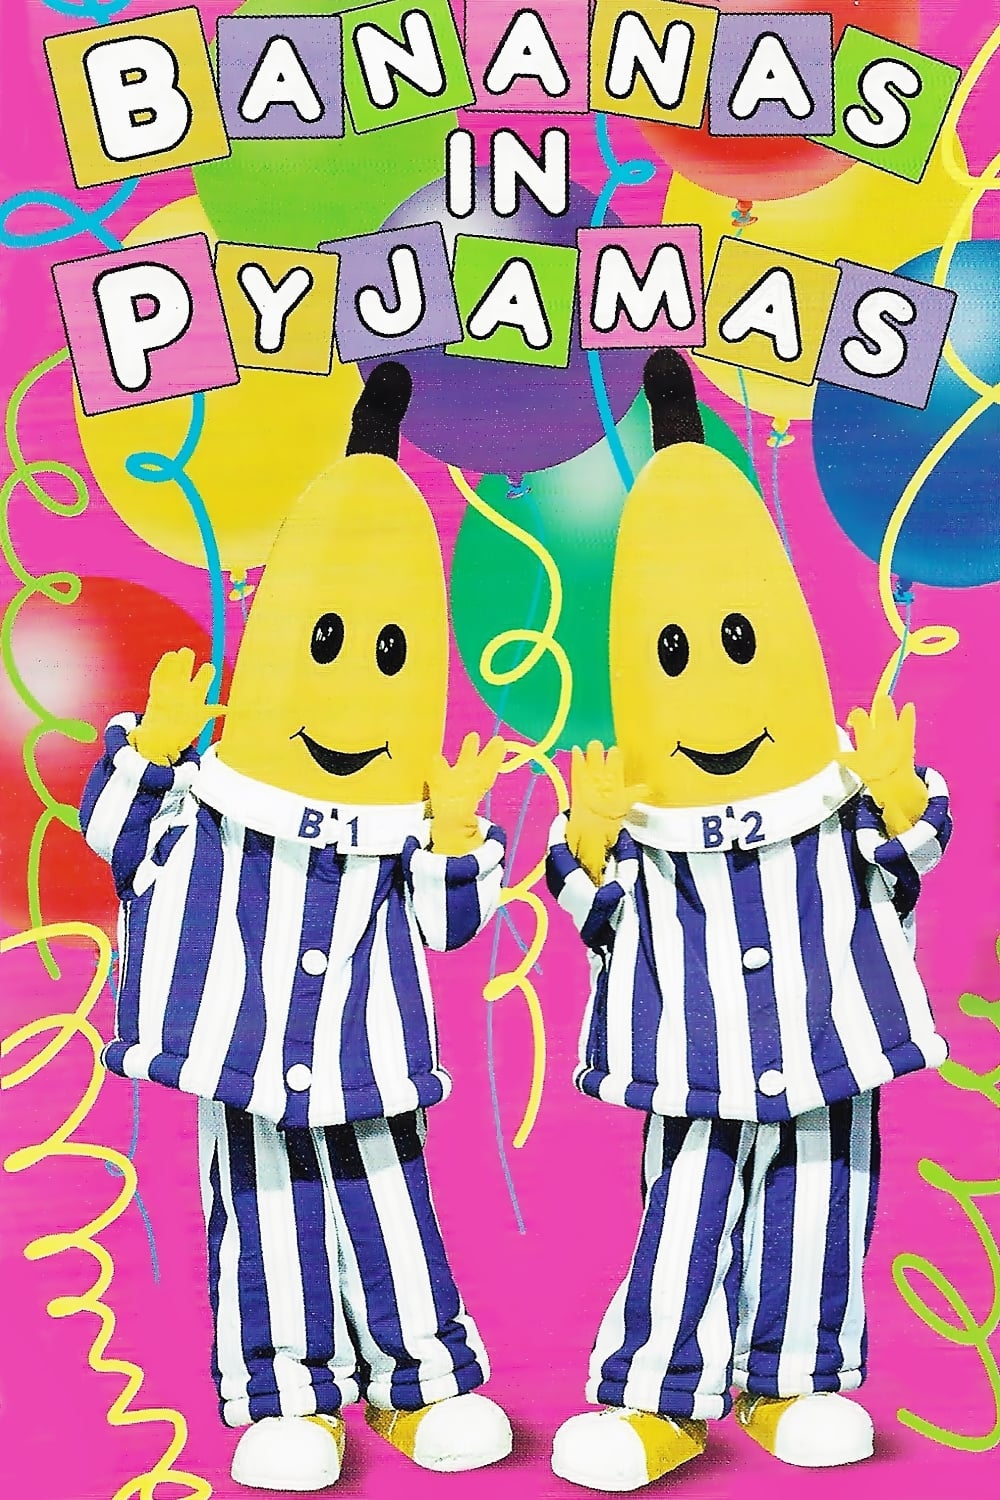 Bananas in Pyjamas TV Shows About Anthropomorphic Puppets